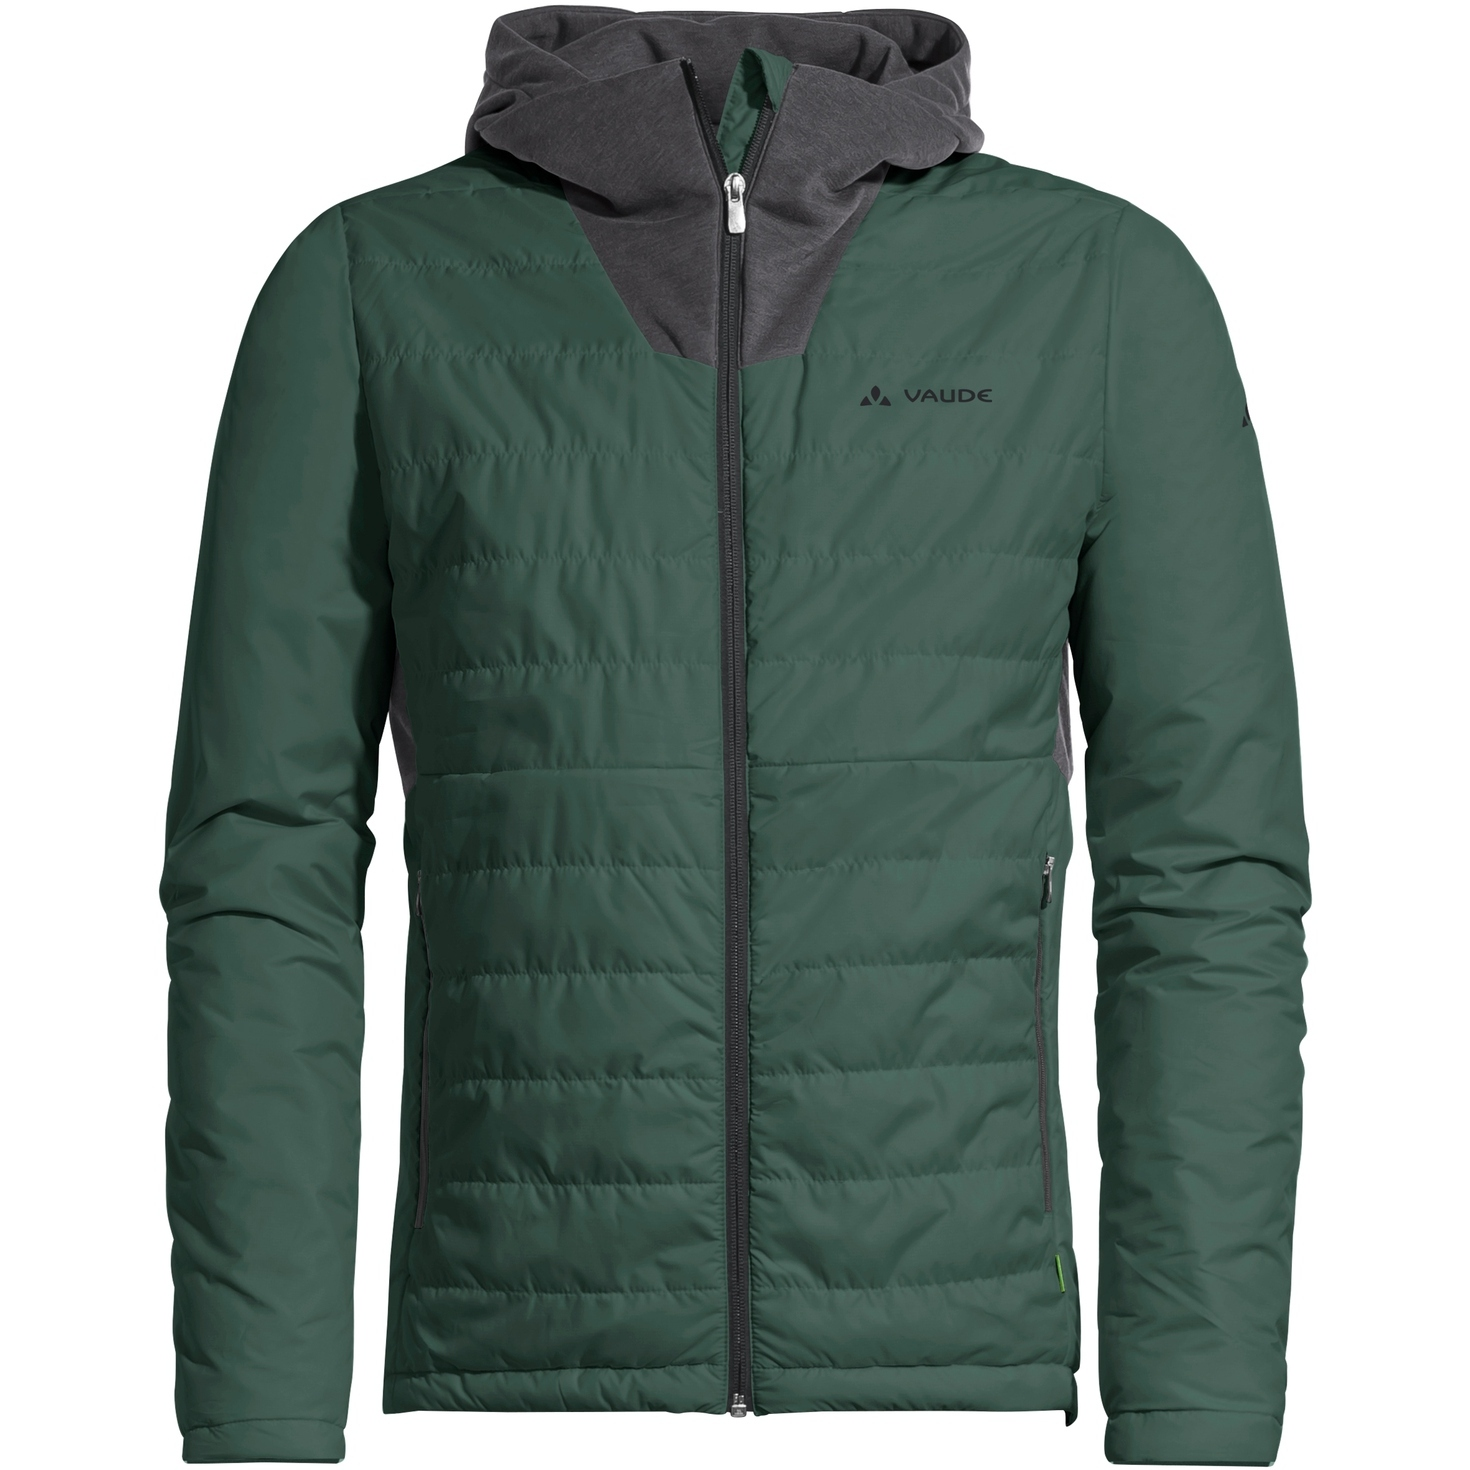 Image of Vaude Men's Cyclist Hybrid Jacket - dusty forest